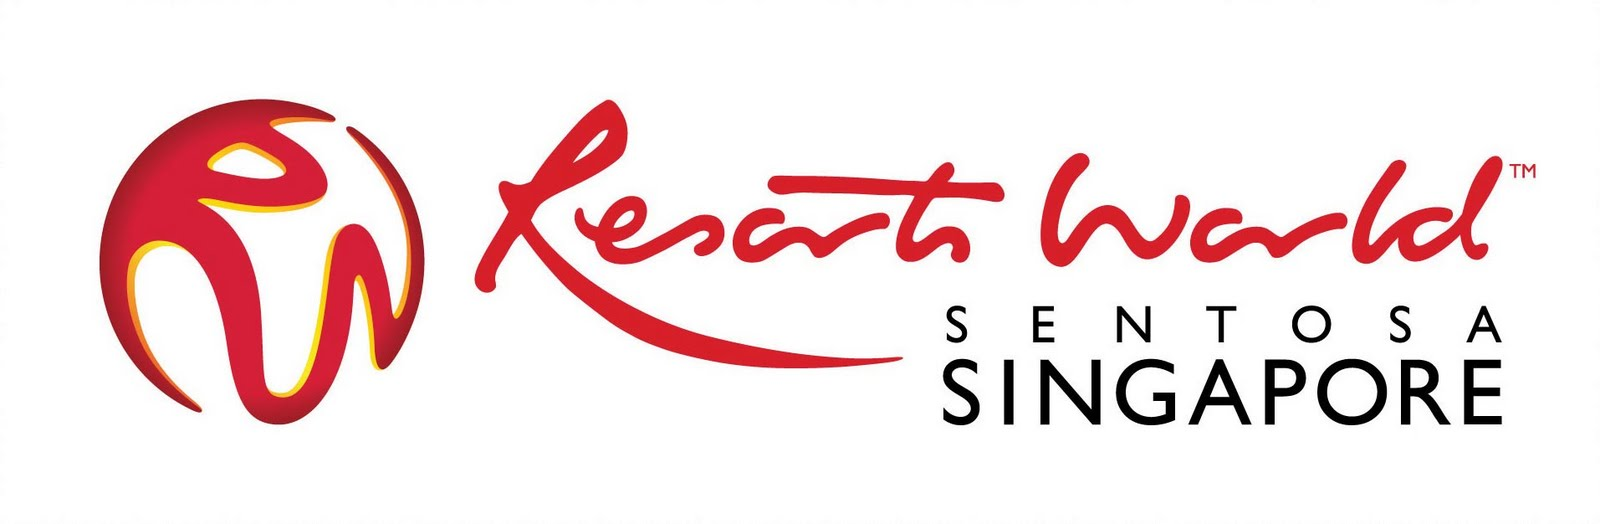 resorts world sentosa logo blooloop clip art of applets and cotlets clip art of apple pie